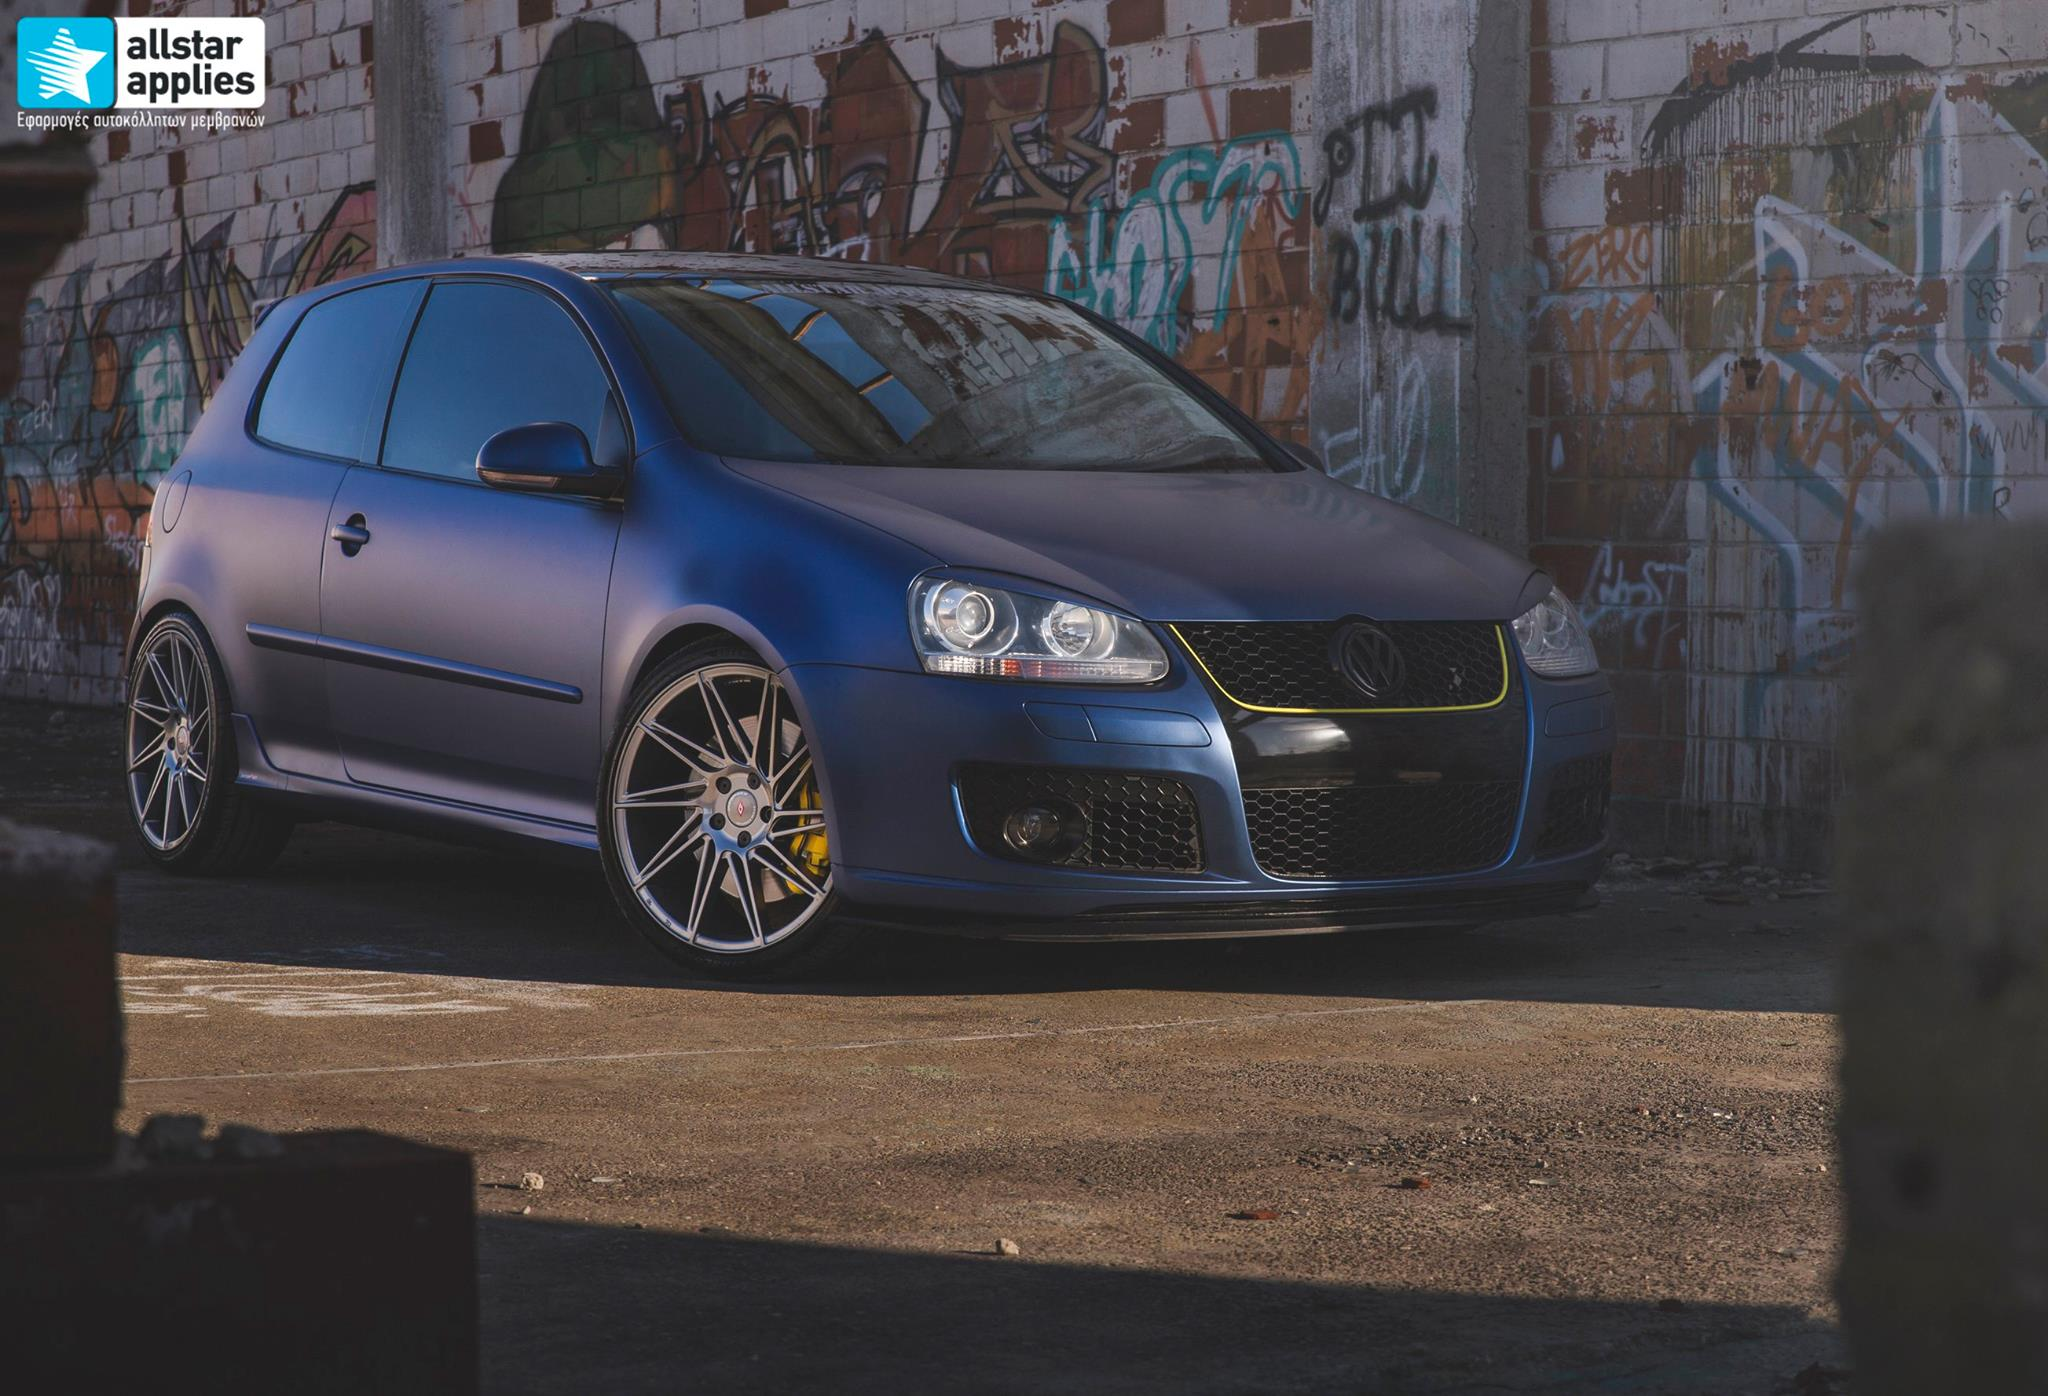 VW Golf 5 - Matt Trenton Blue (14)